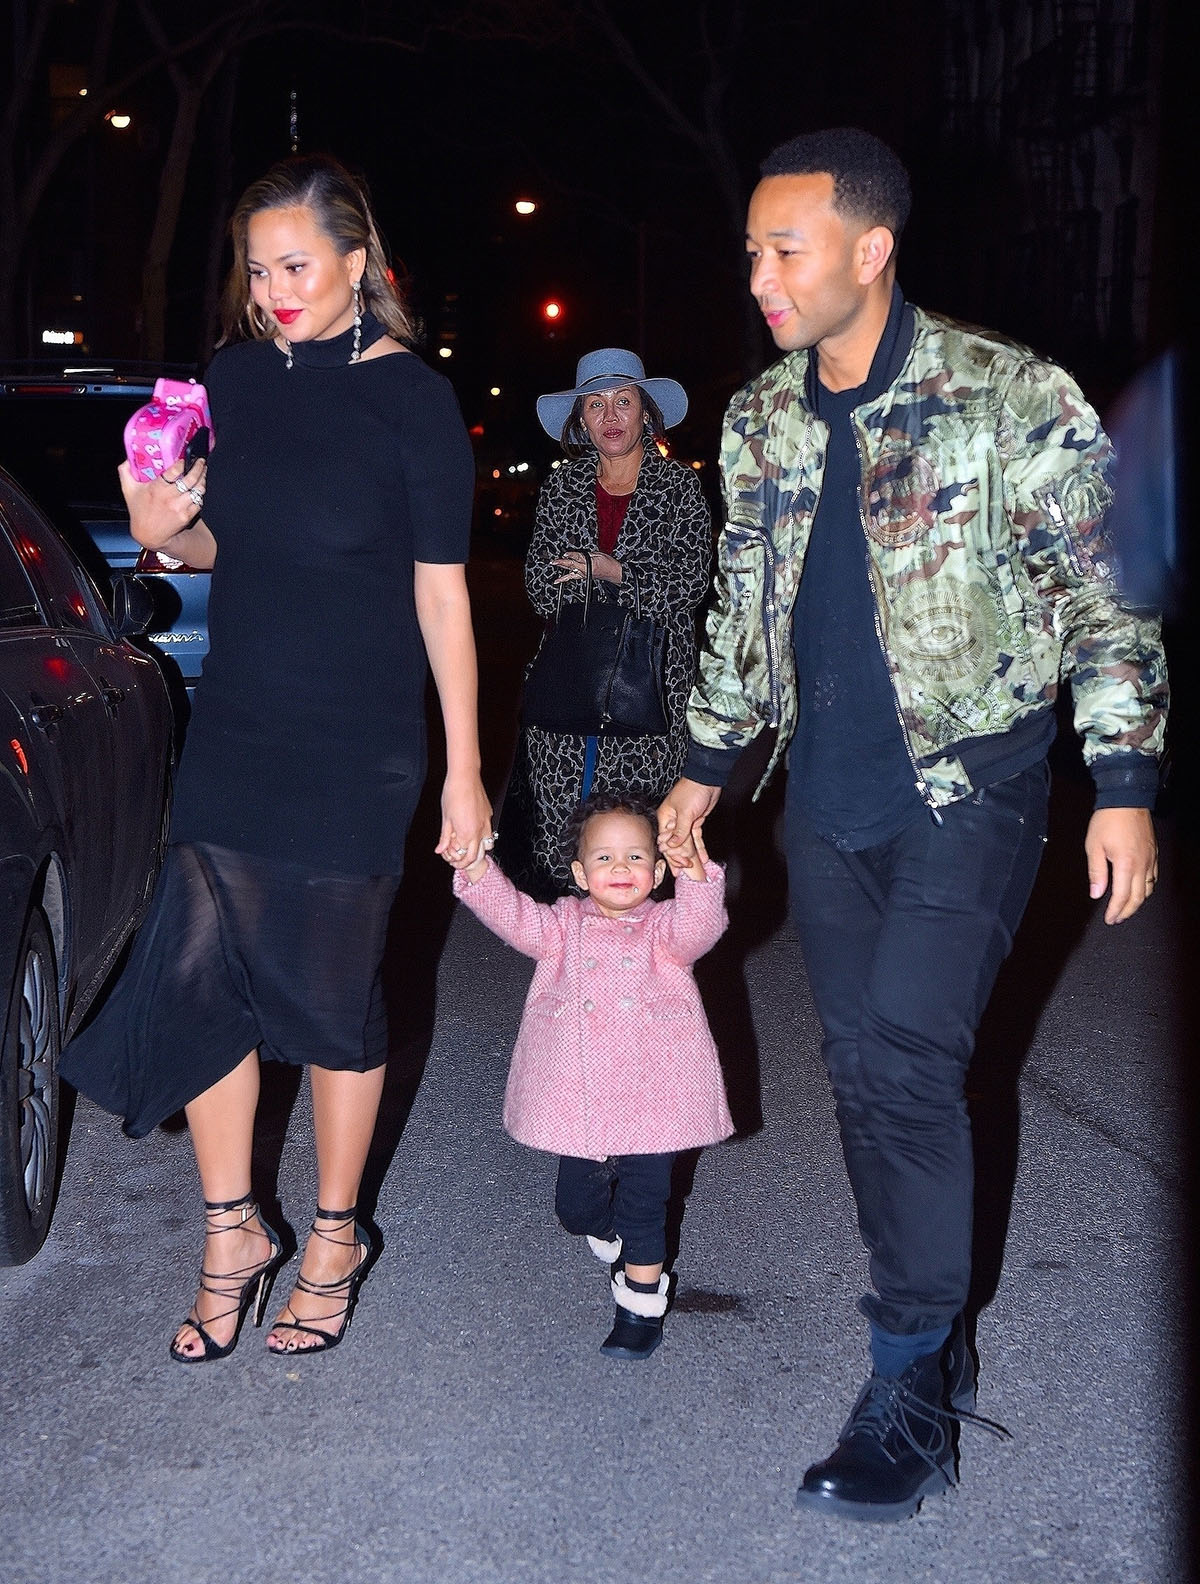 John Legend & Chrissy Teigen with their daughter Luna